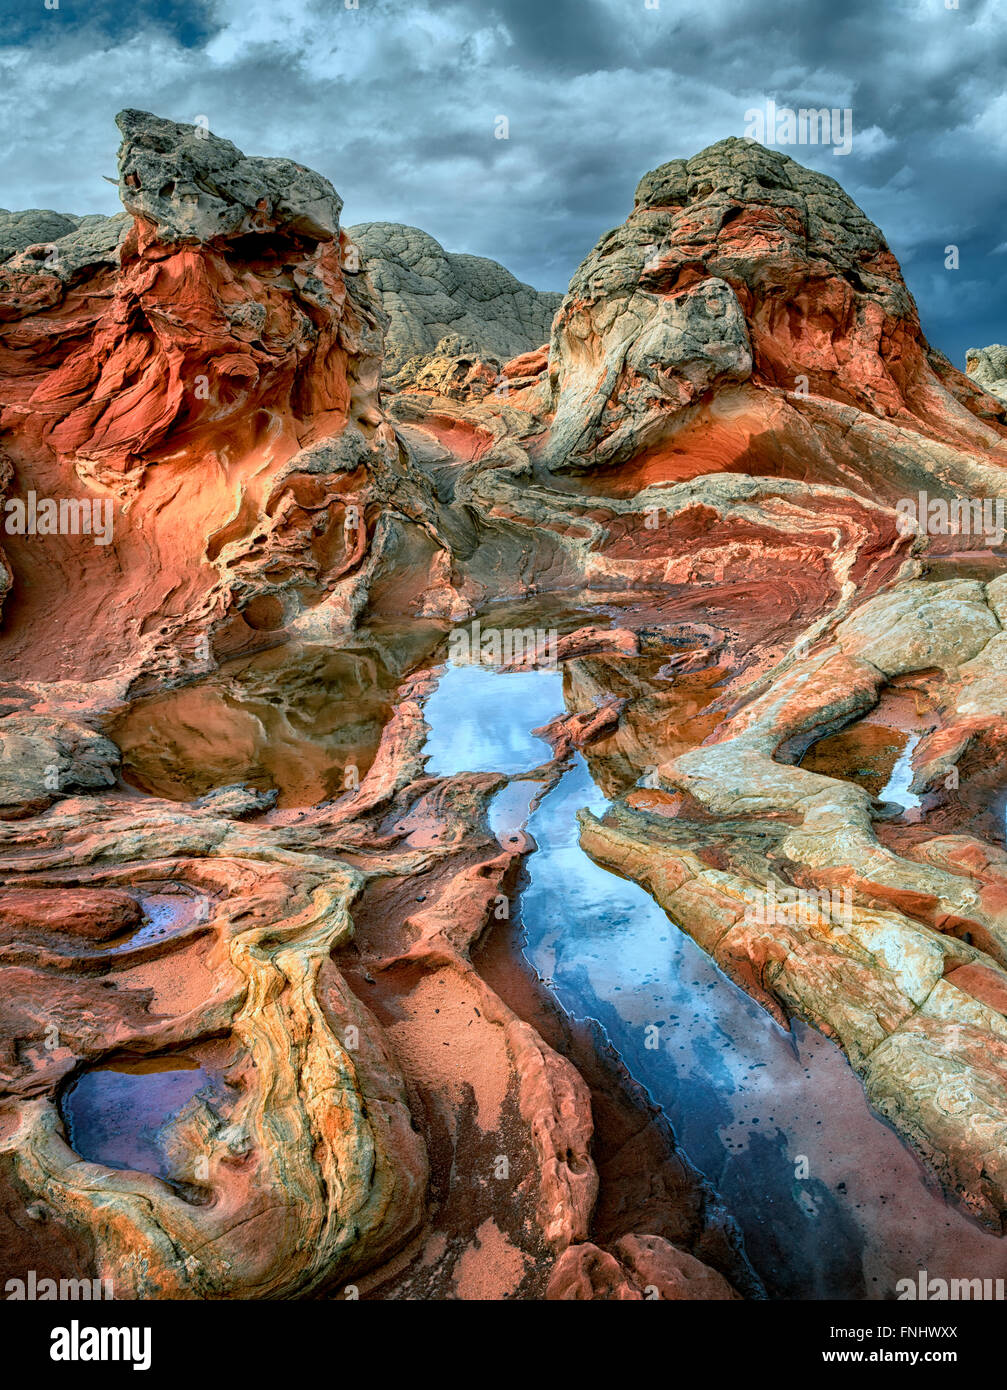 Pocket blanc avec l'eau de pluie piscines. Vermilion Cliffs National Monument, Arizona Photo Stock